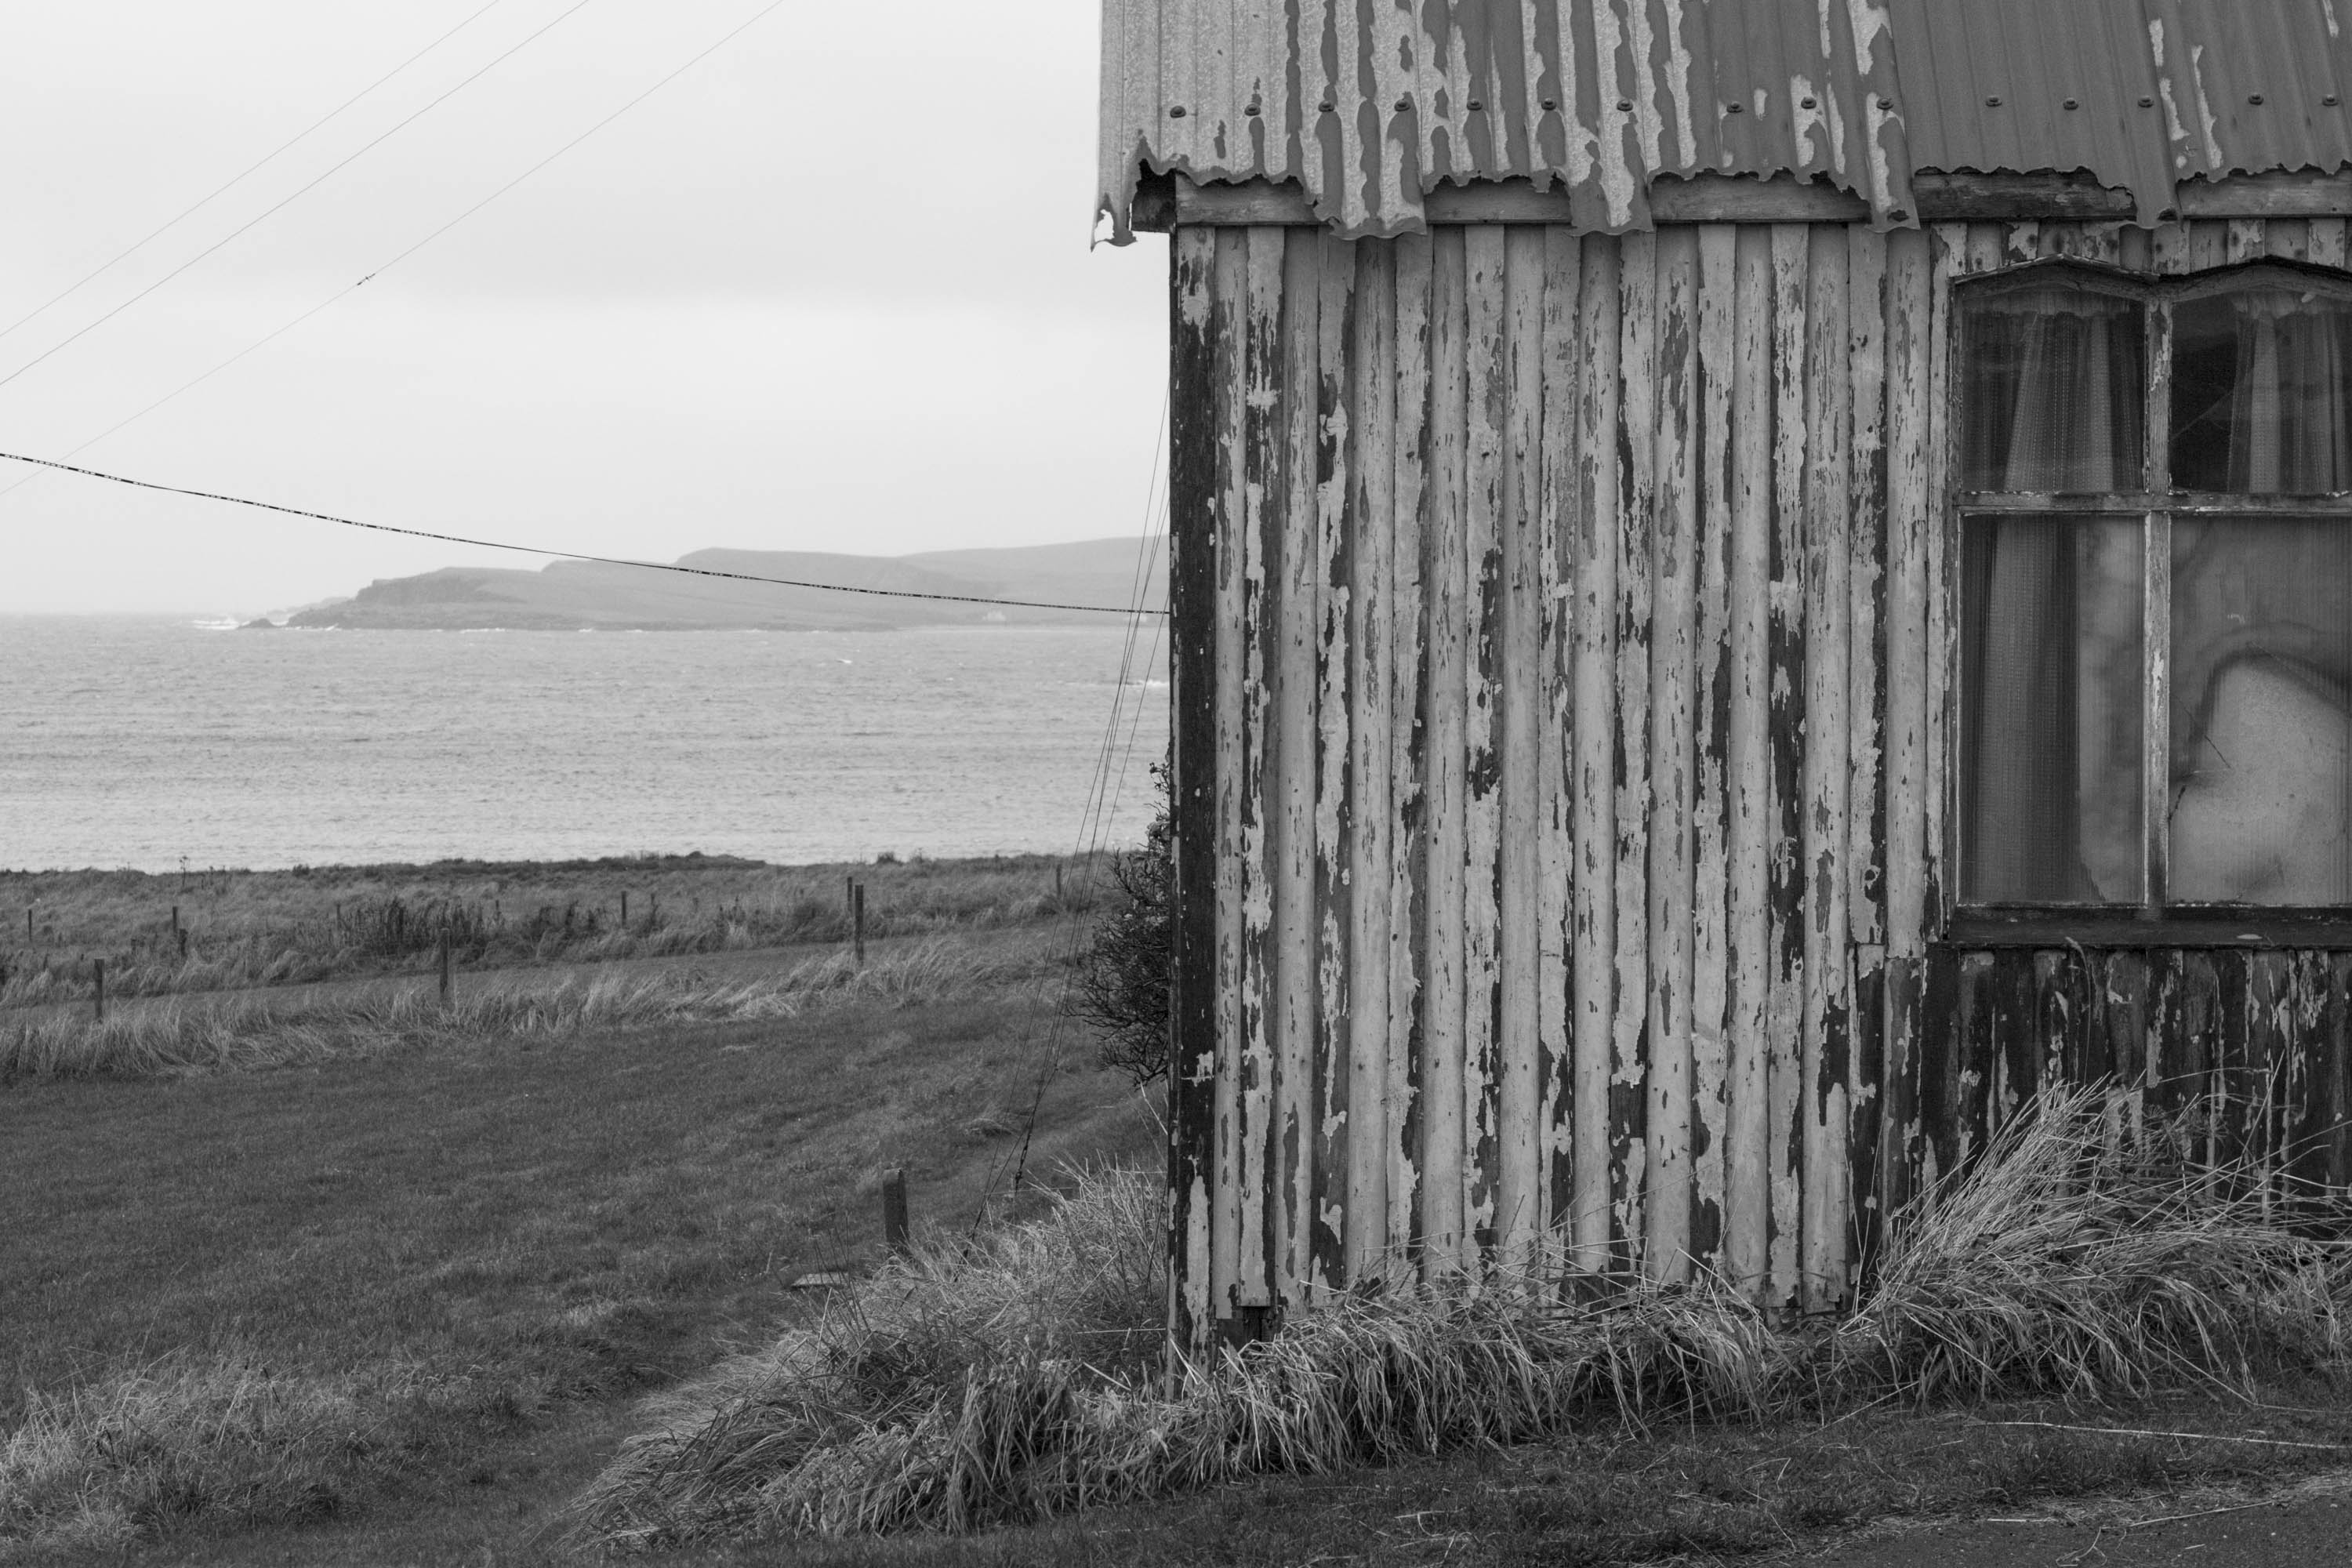 Gospel Hall in Hoswick, Shetland. A small, old wooden building with a corrugated tin roof. The tin is worn, with a jagged edge. Behind a view to the sea and Levenwick